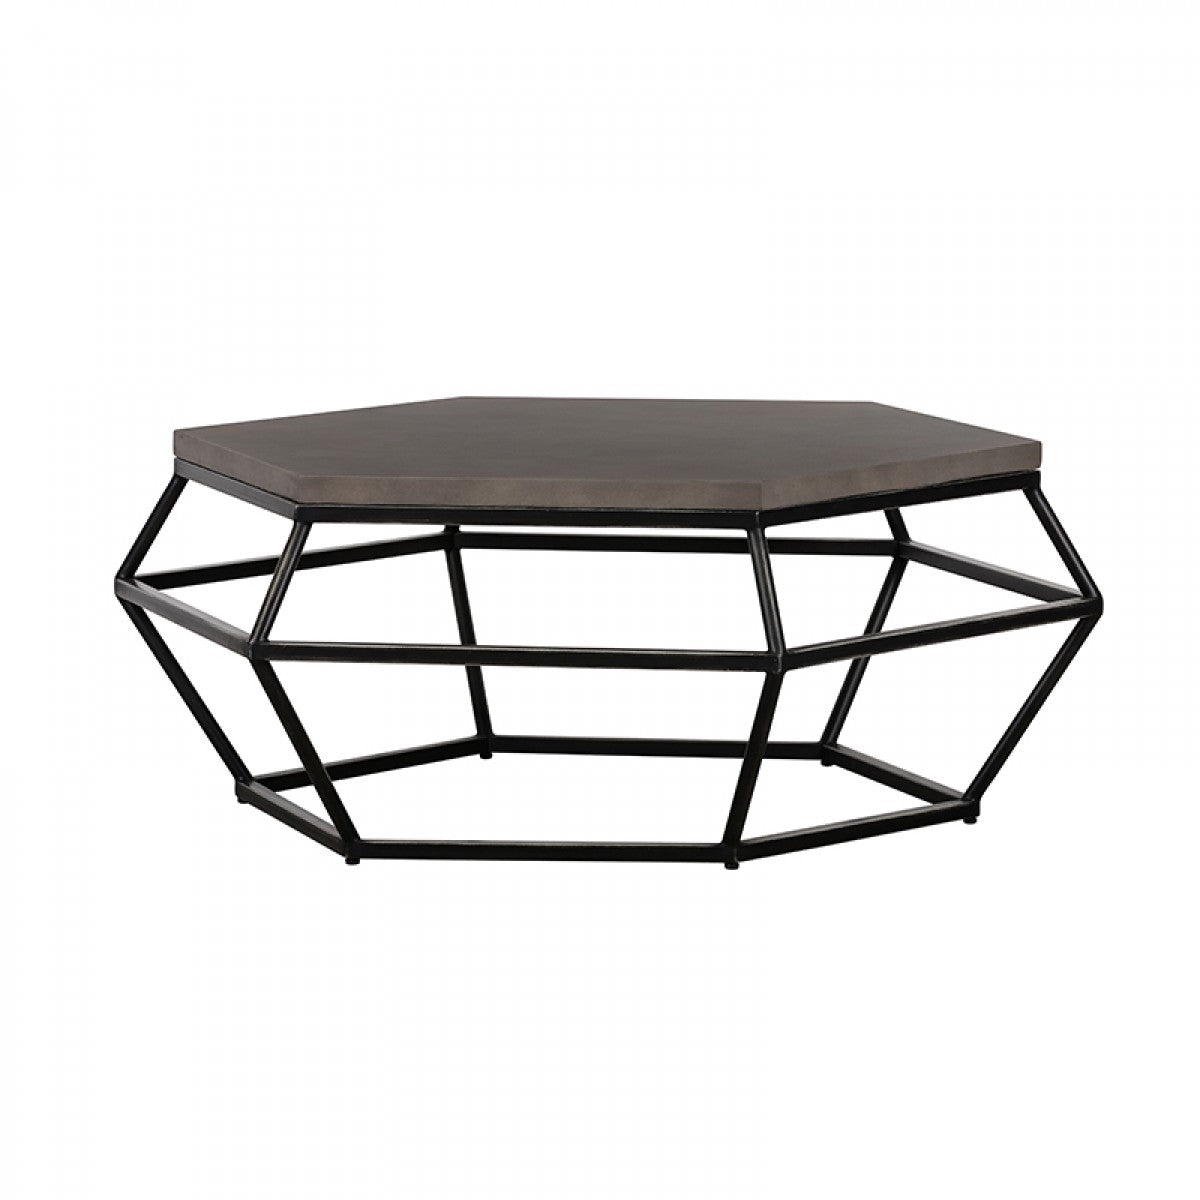 Modrest Tartan Modern Concrete & Black Metal Coffee Table